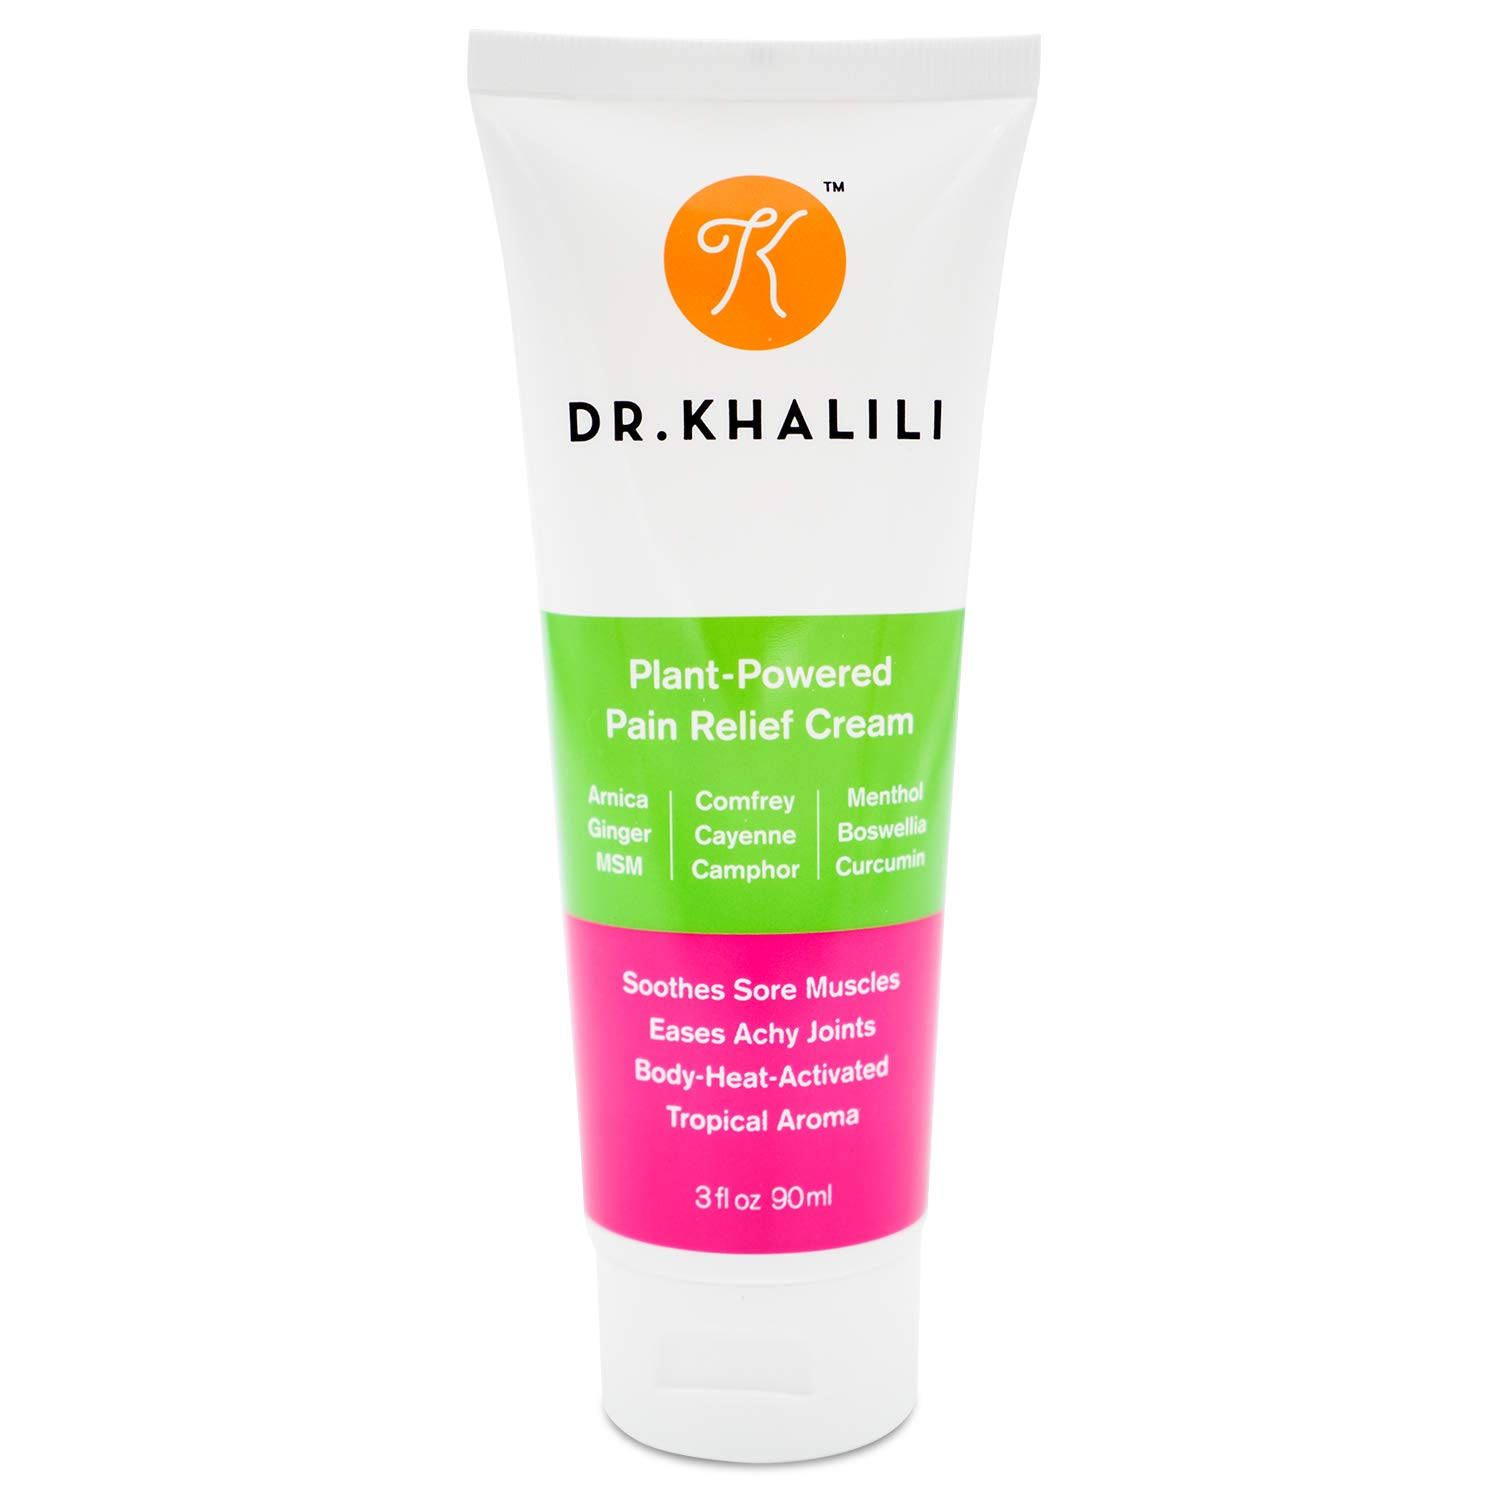 Khalili Natural Pain Relief Cream - Dual-Activation Pain Relief Cream Fast Muscle Pain Relief, Back Pain Relief, Exercise Recovery, Sports Injury & more. Move Better, Feel Better & Perform Better